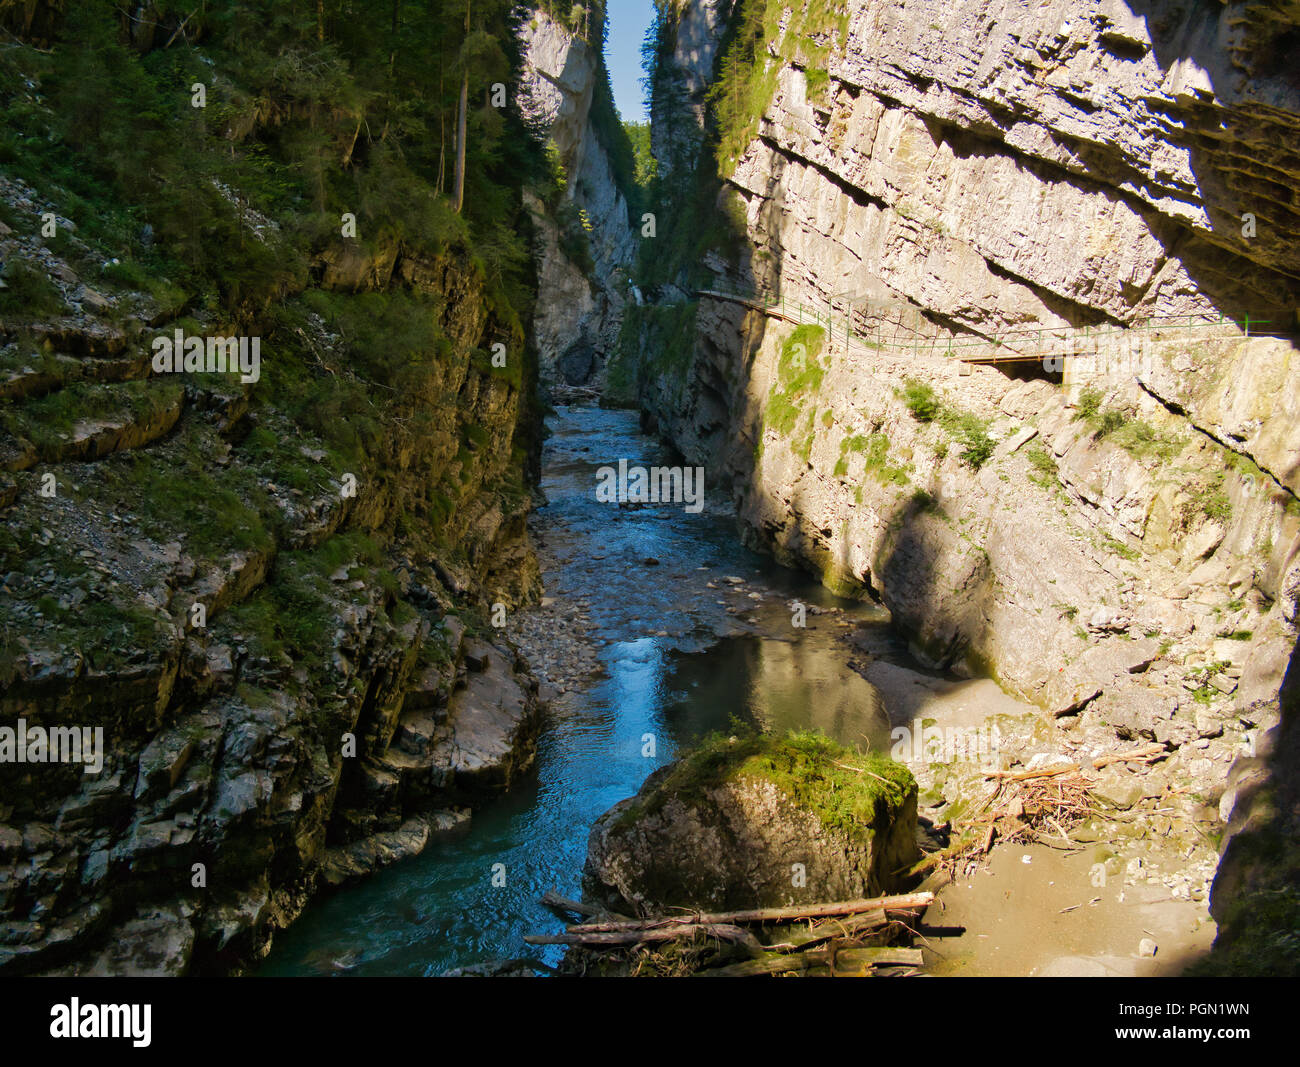 Entrance from the south side to the gorge in sunshine with little water in summer - Stock Image